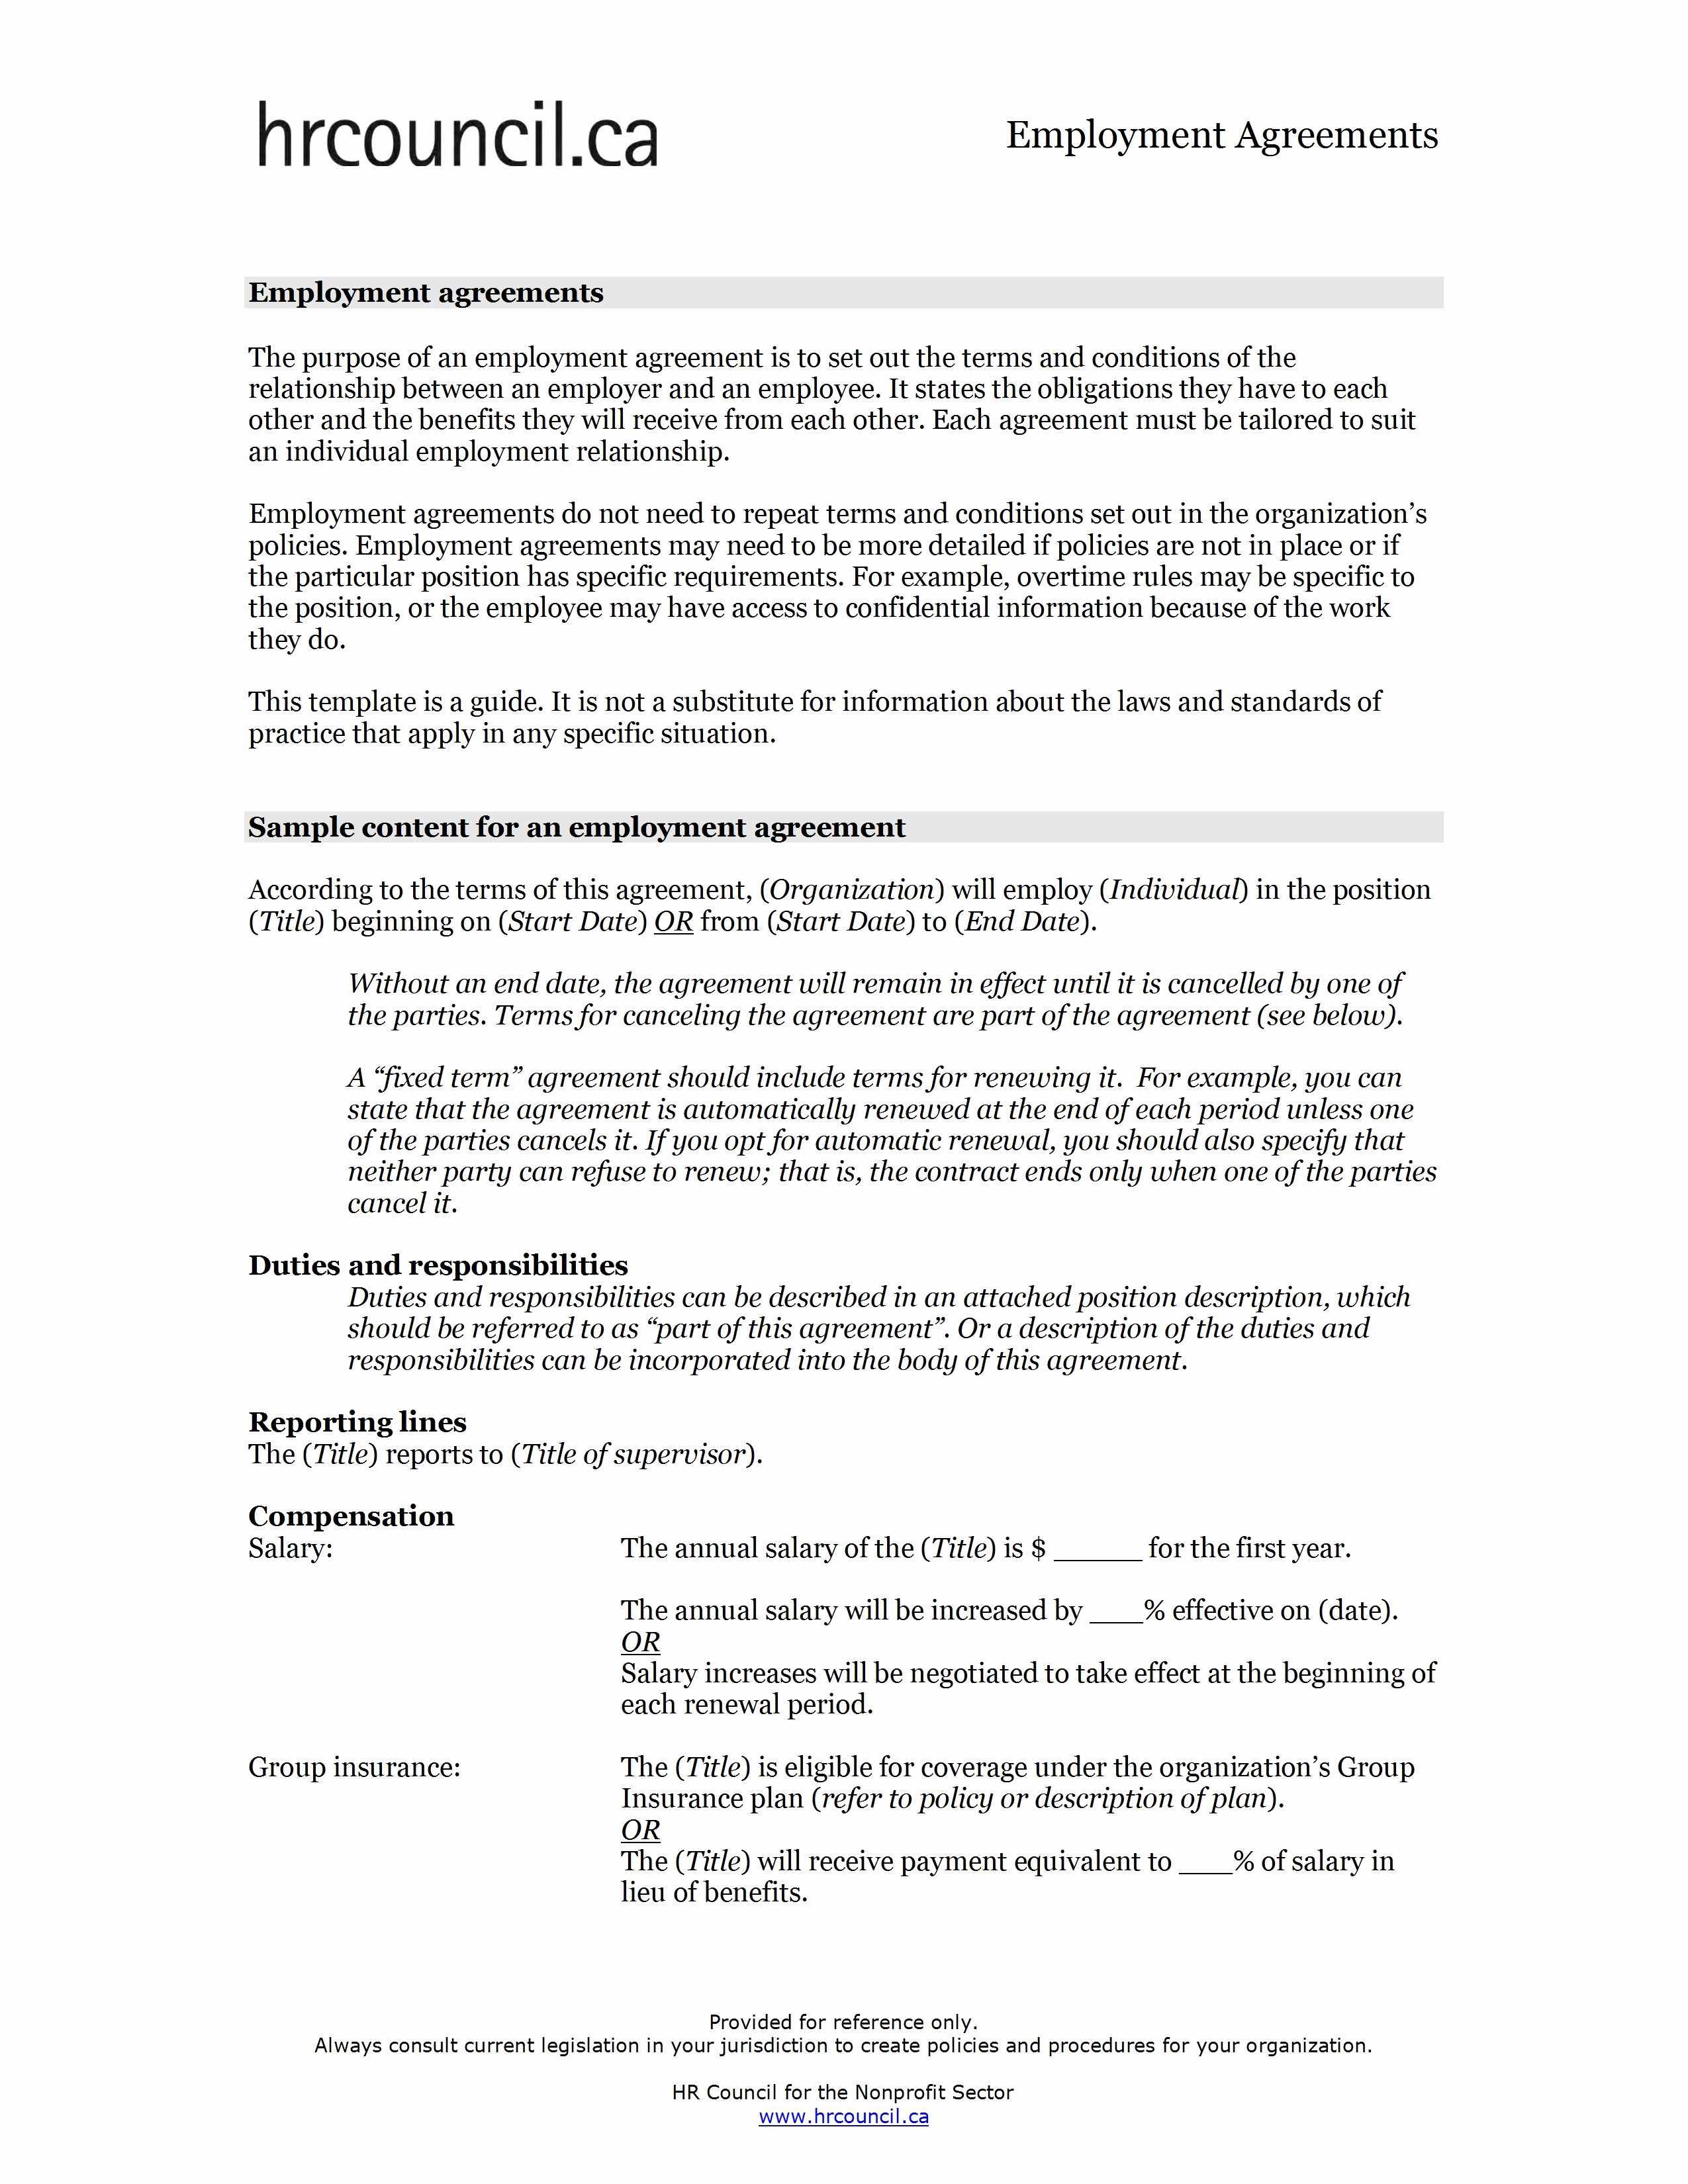 Employment Agreement Template Word Inspirational Employment Agreement Template